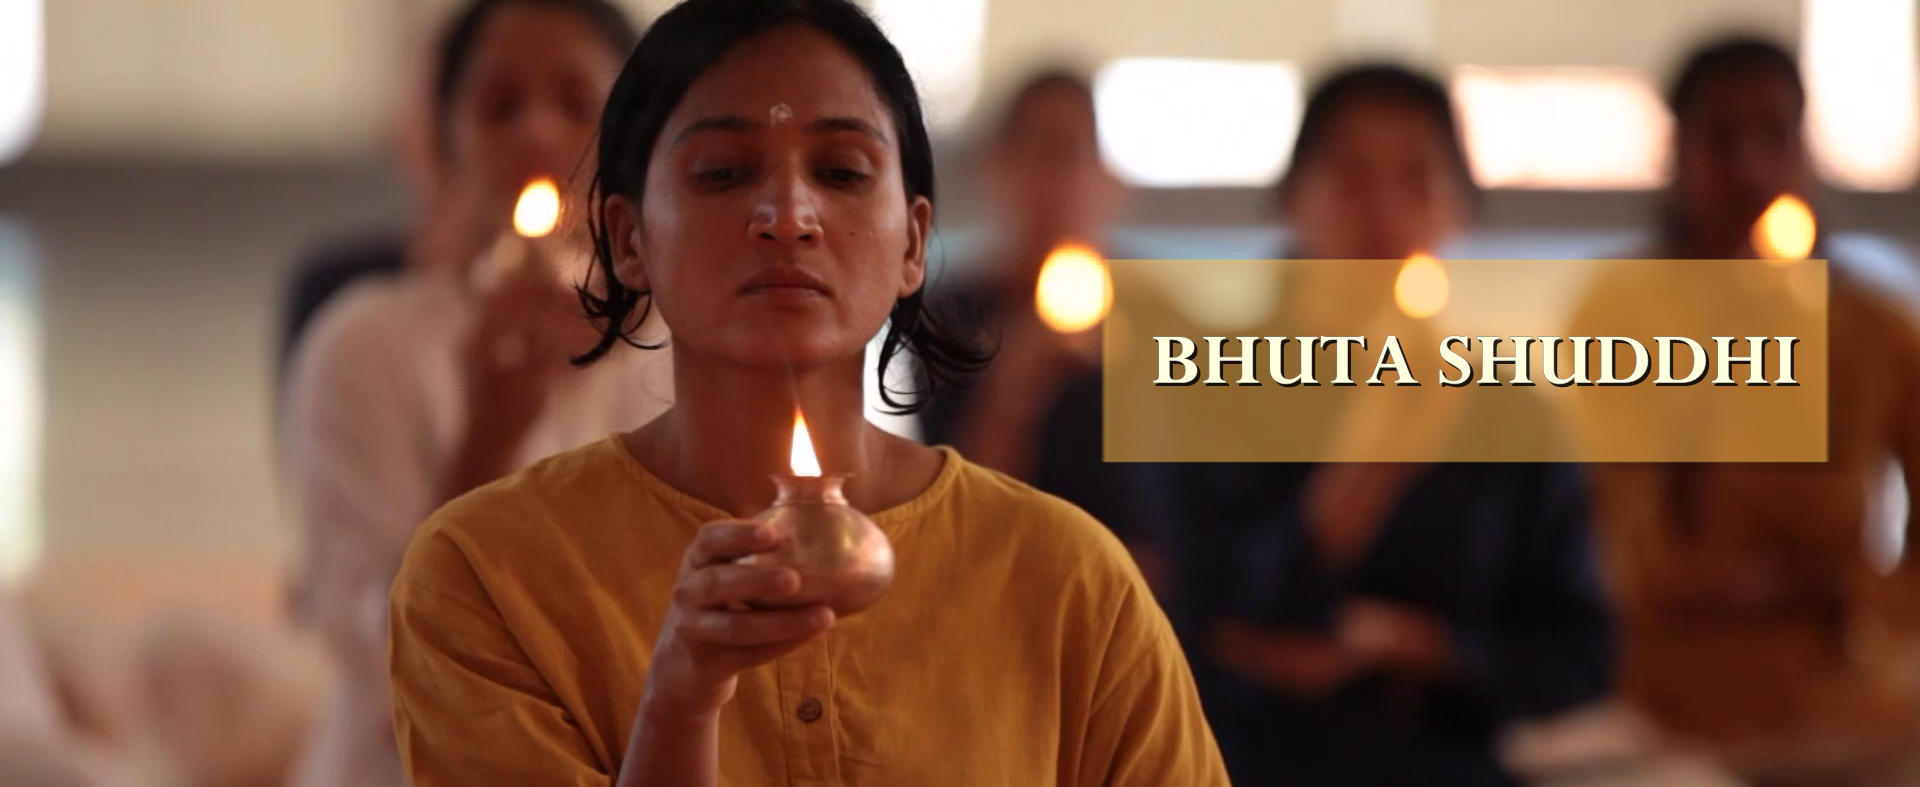 Book Online Tickets for Bhuta Shuddhi, NewDelhi. Bhuta Shuddhi is the most fundamental practice in the yogic system. \\\